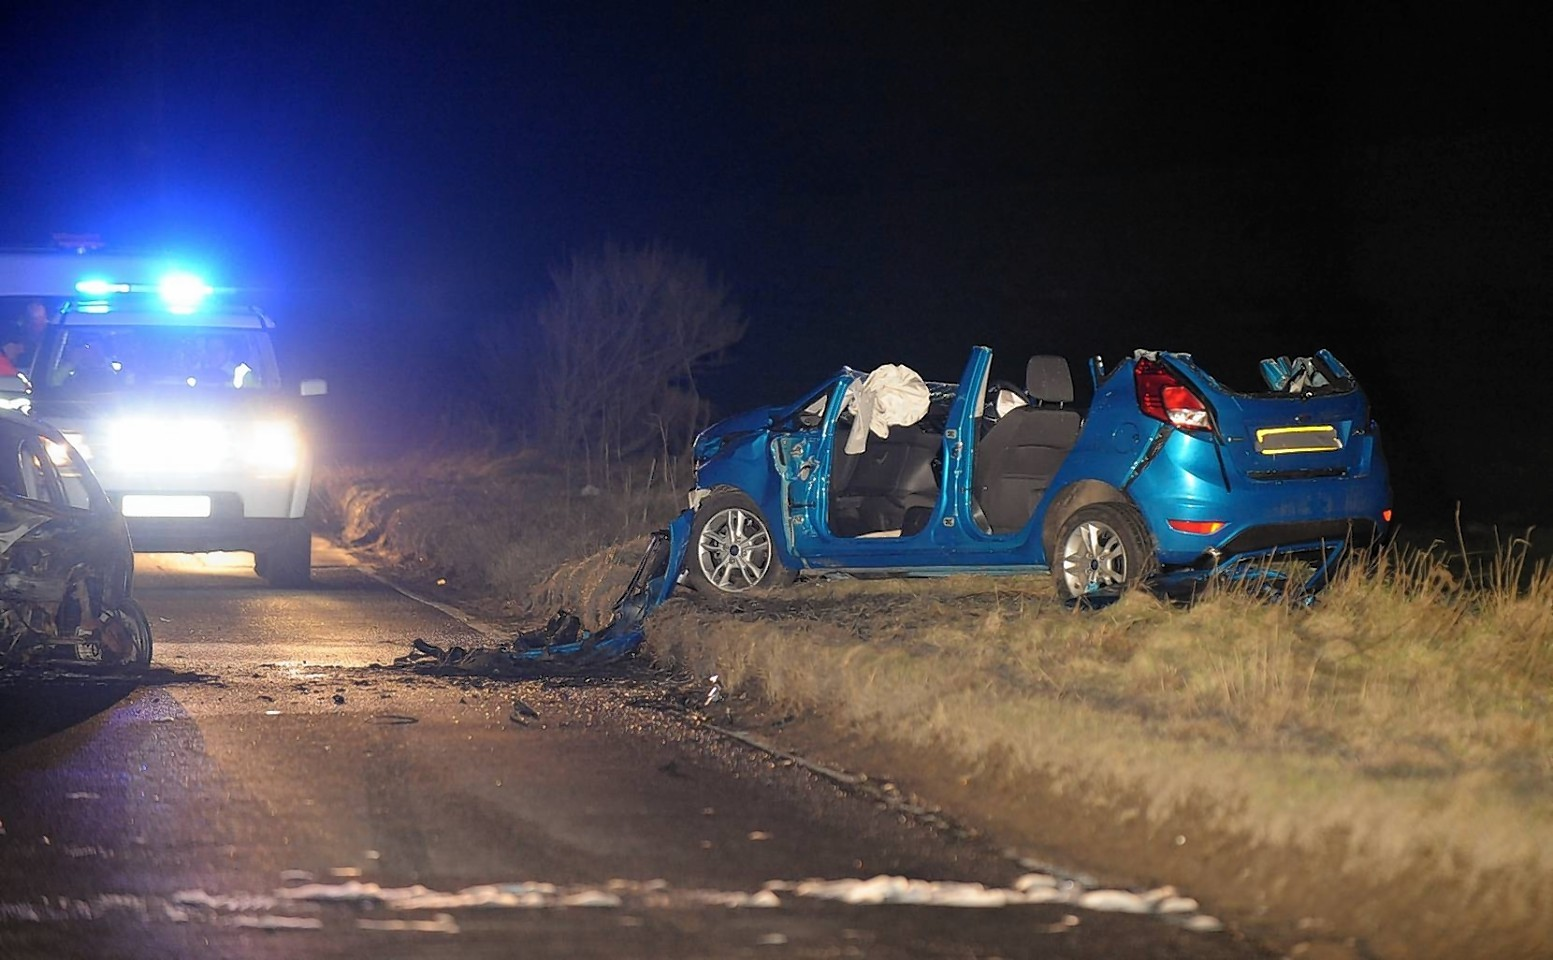 The Ka which caught fire at the scene of the crash on the South Deeside Road last night